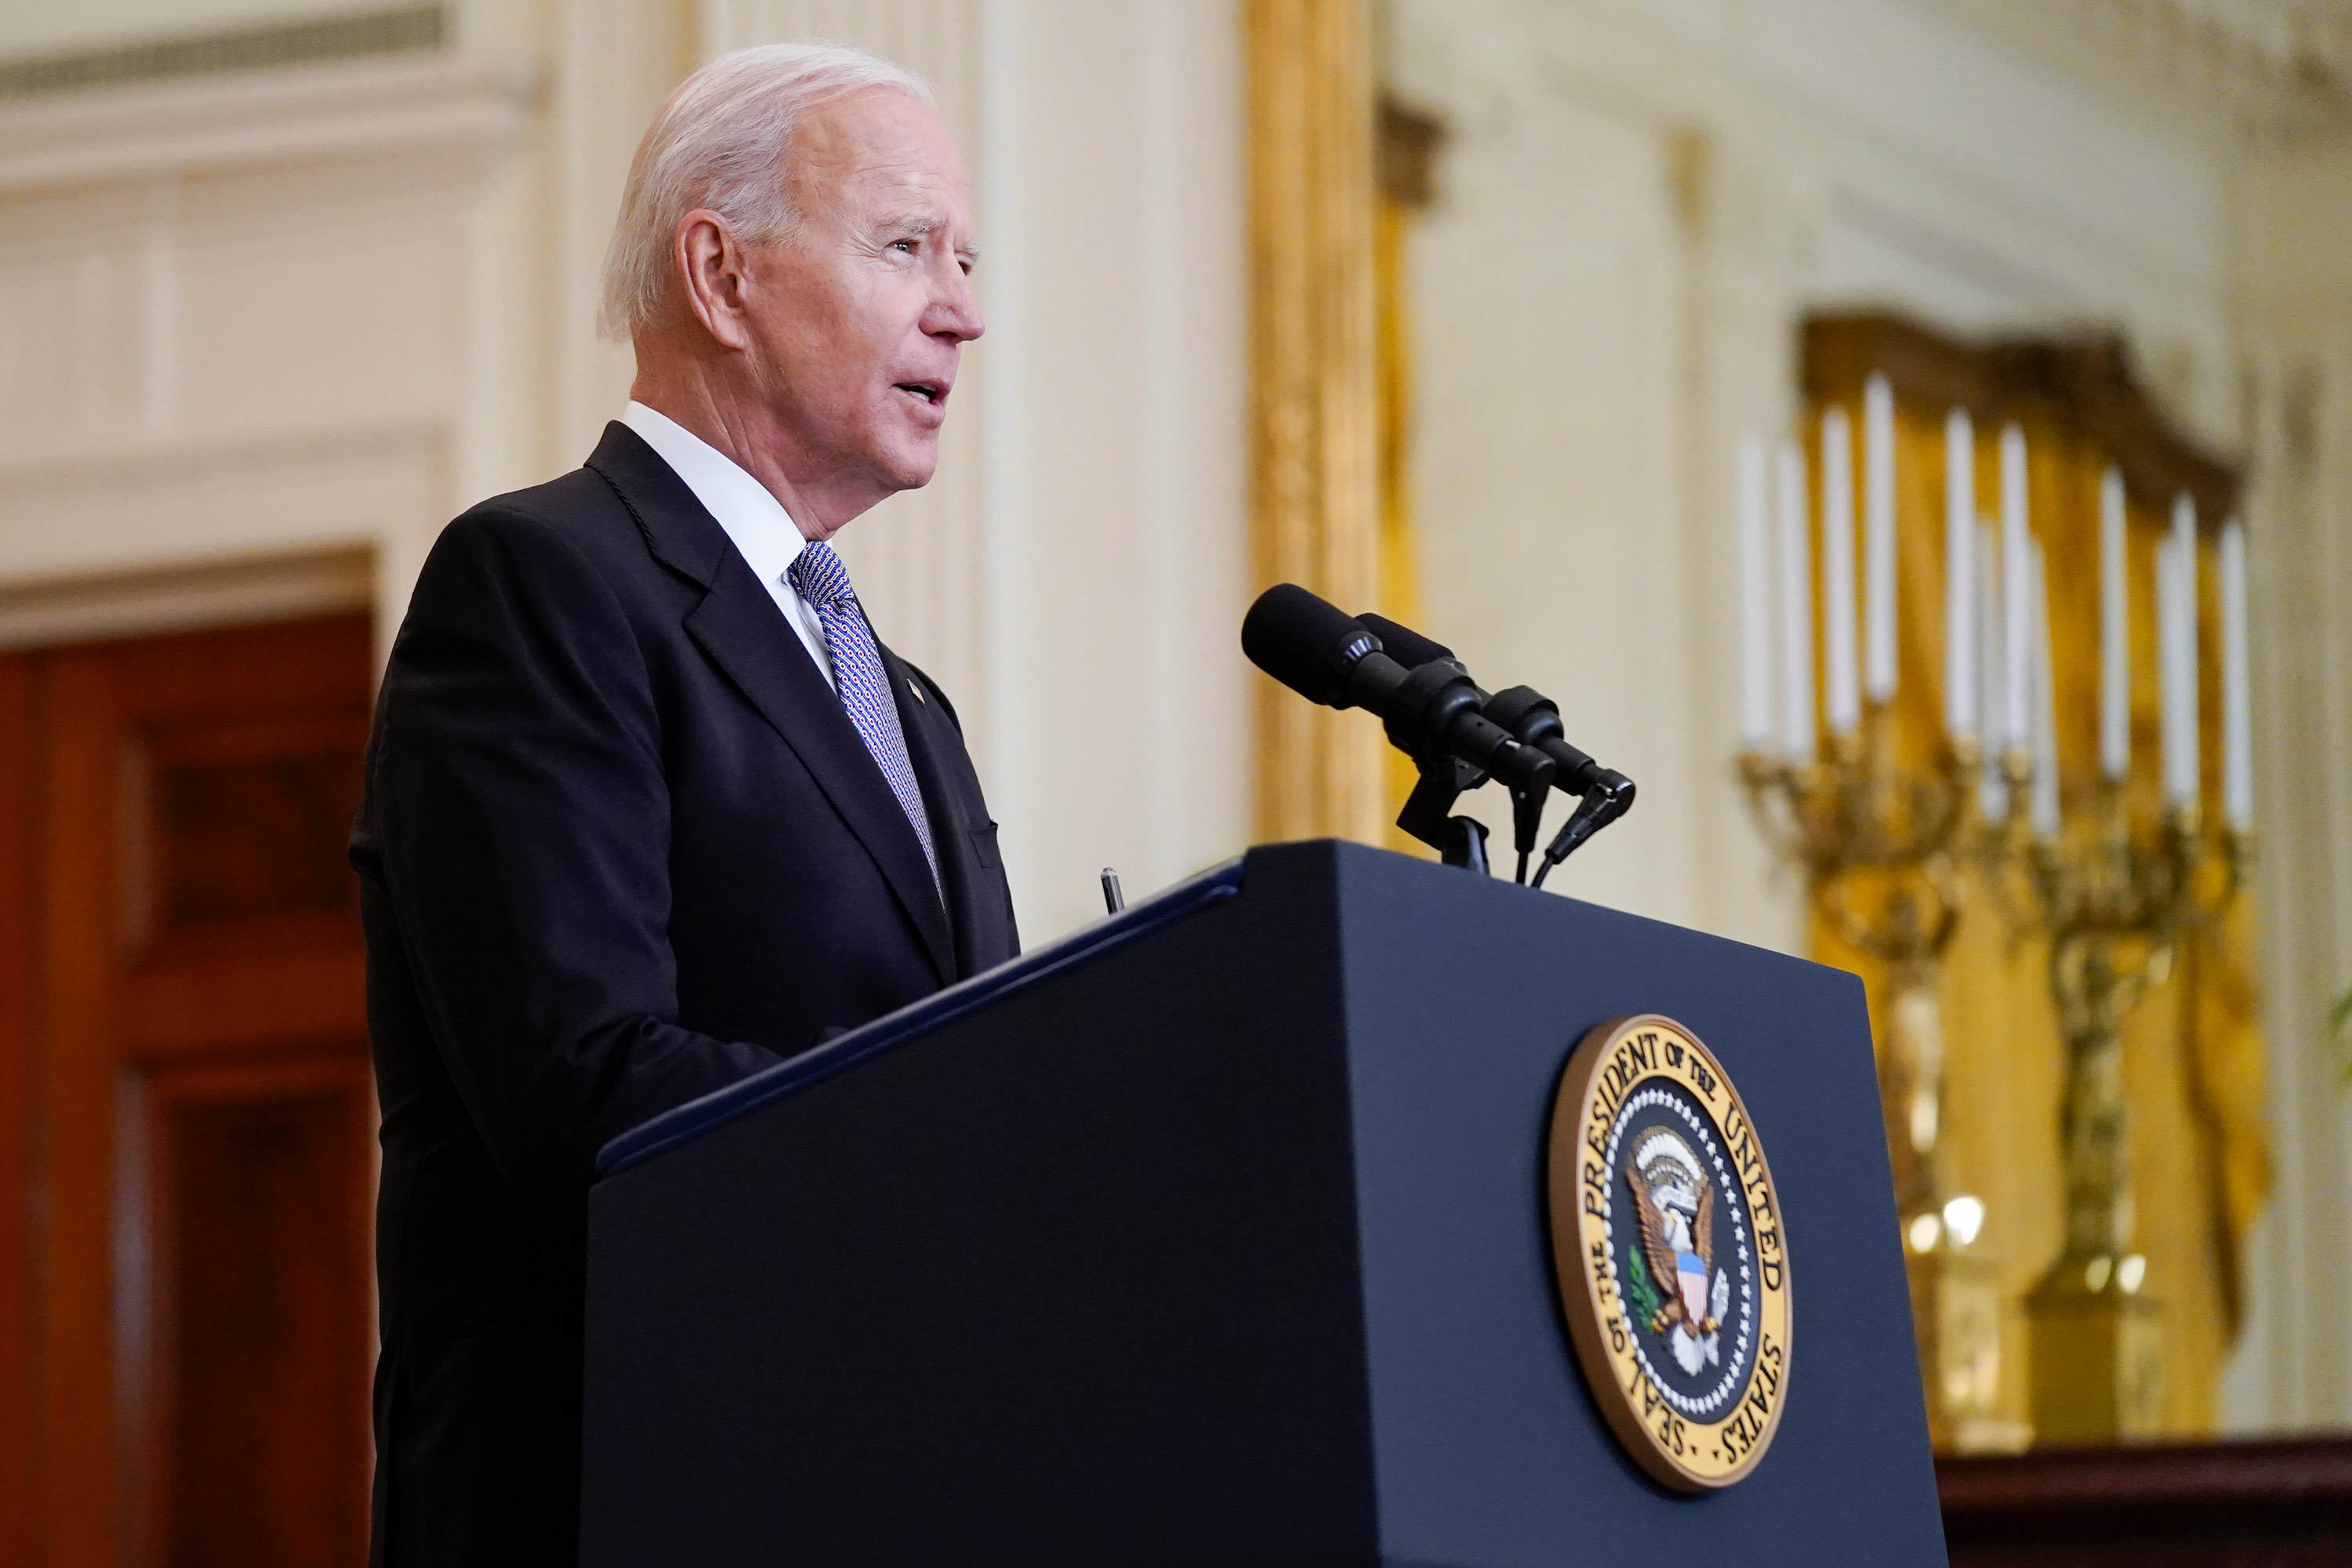 White House says Biden will release tax returns 'soon'